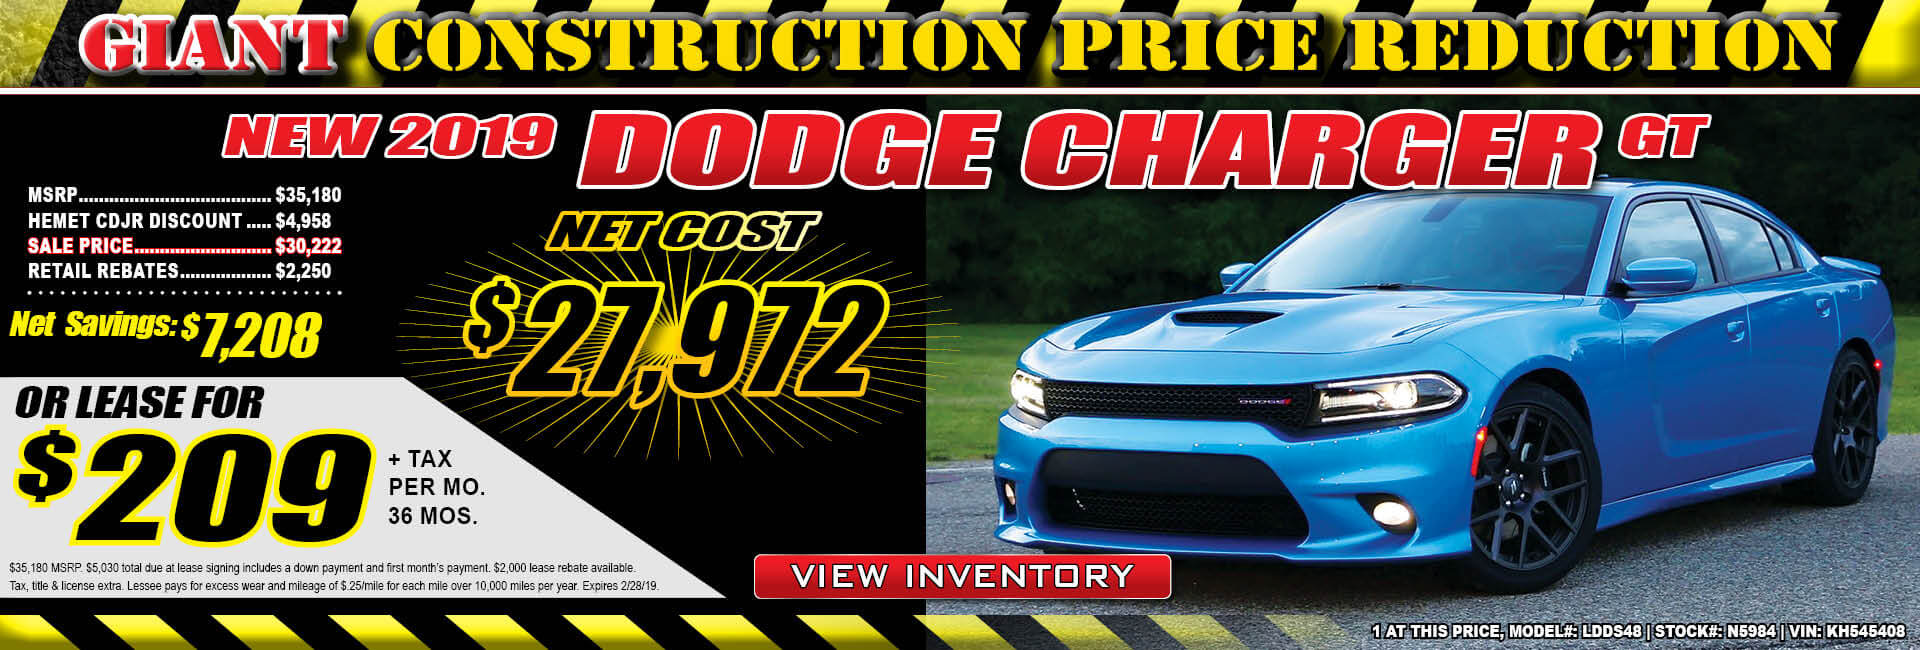 Dodge Charger Lease $209